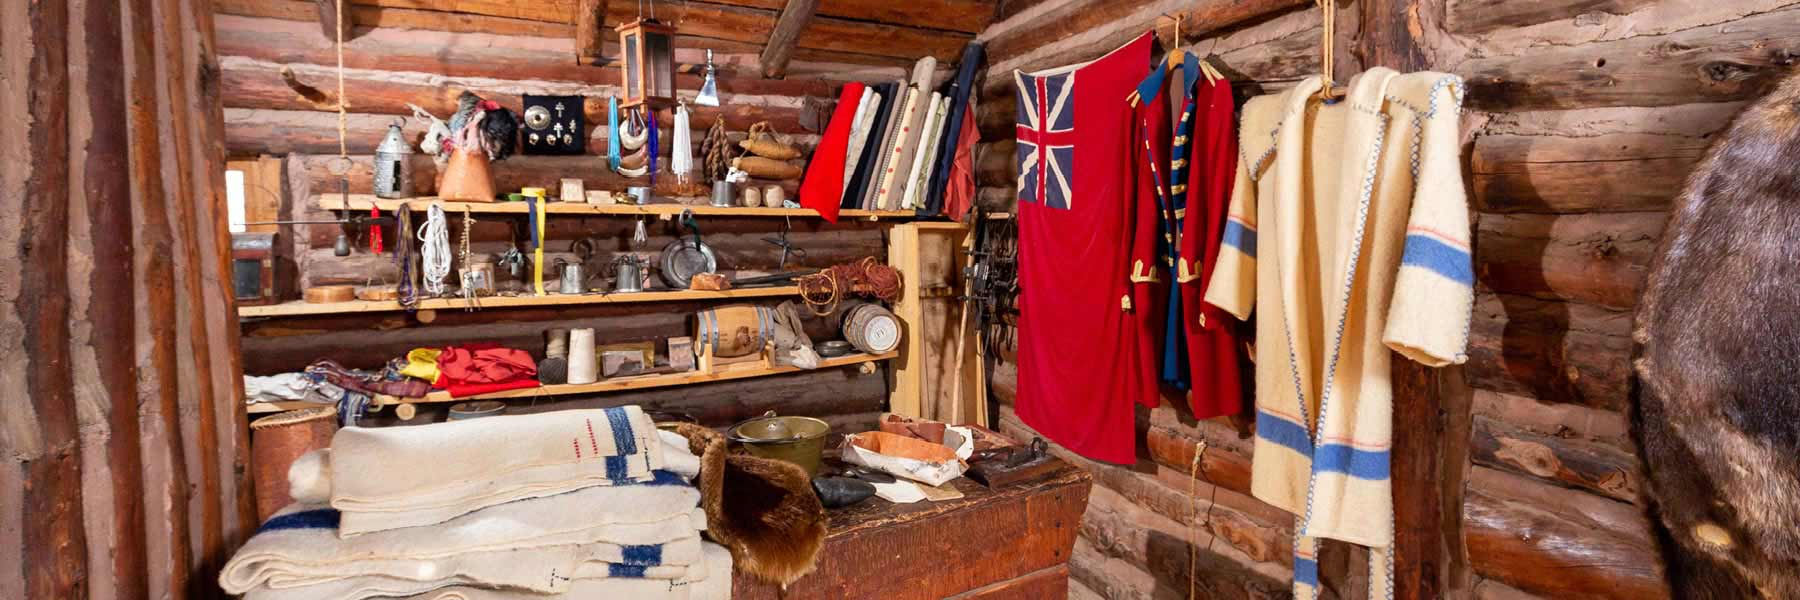 A log cabin interior decorated with late 18th century artifacts including a British flag.